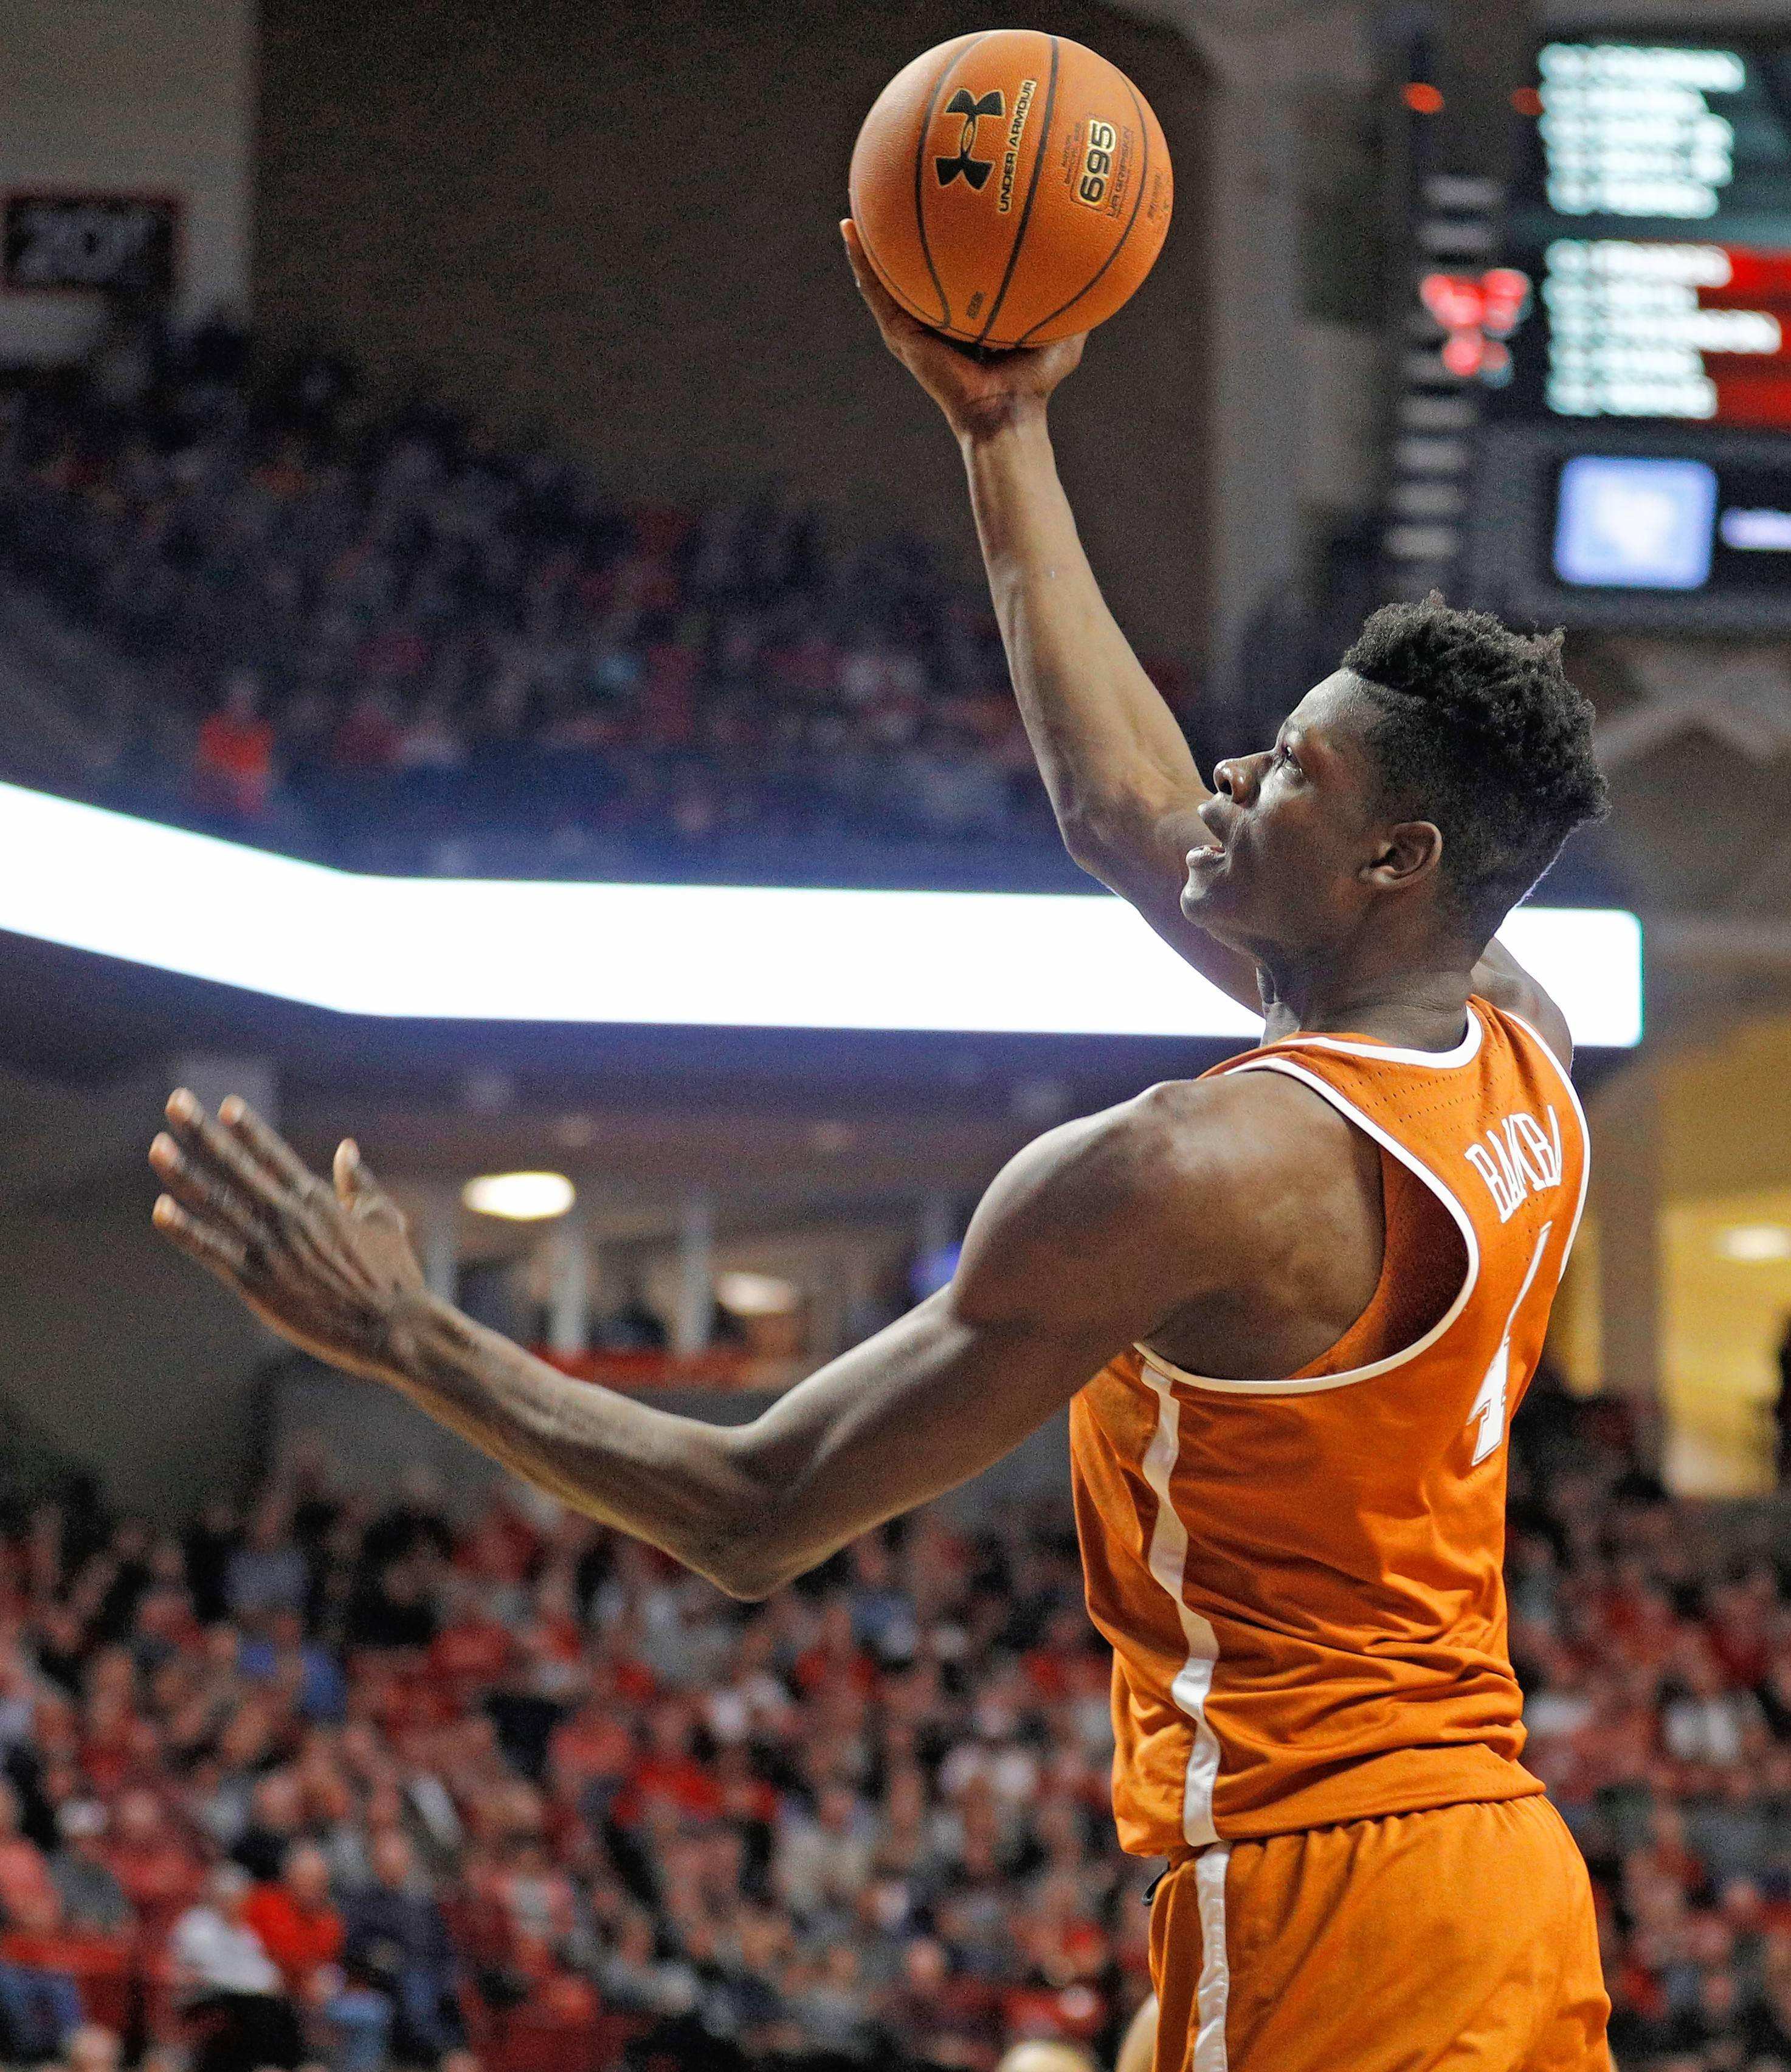 After picking Bulls for first workout, Bamba calls team a great fit